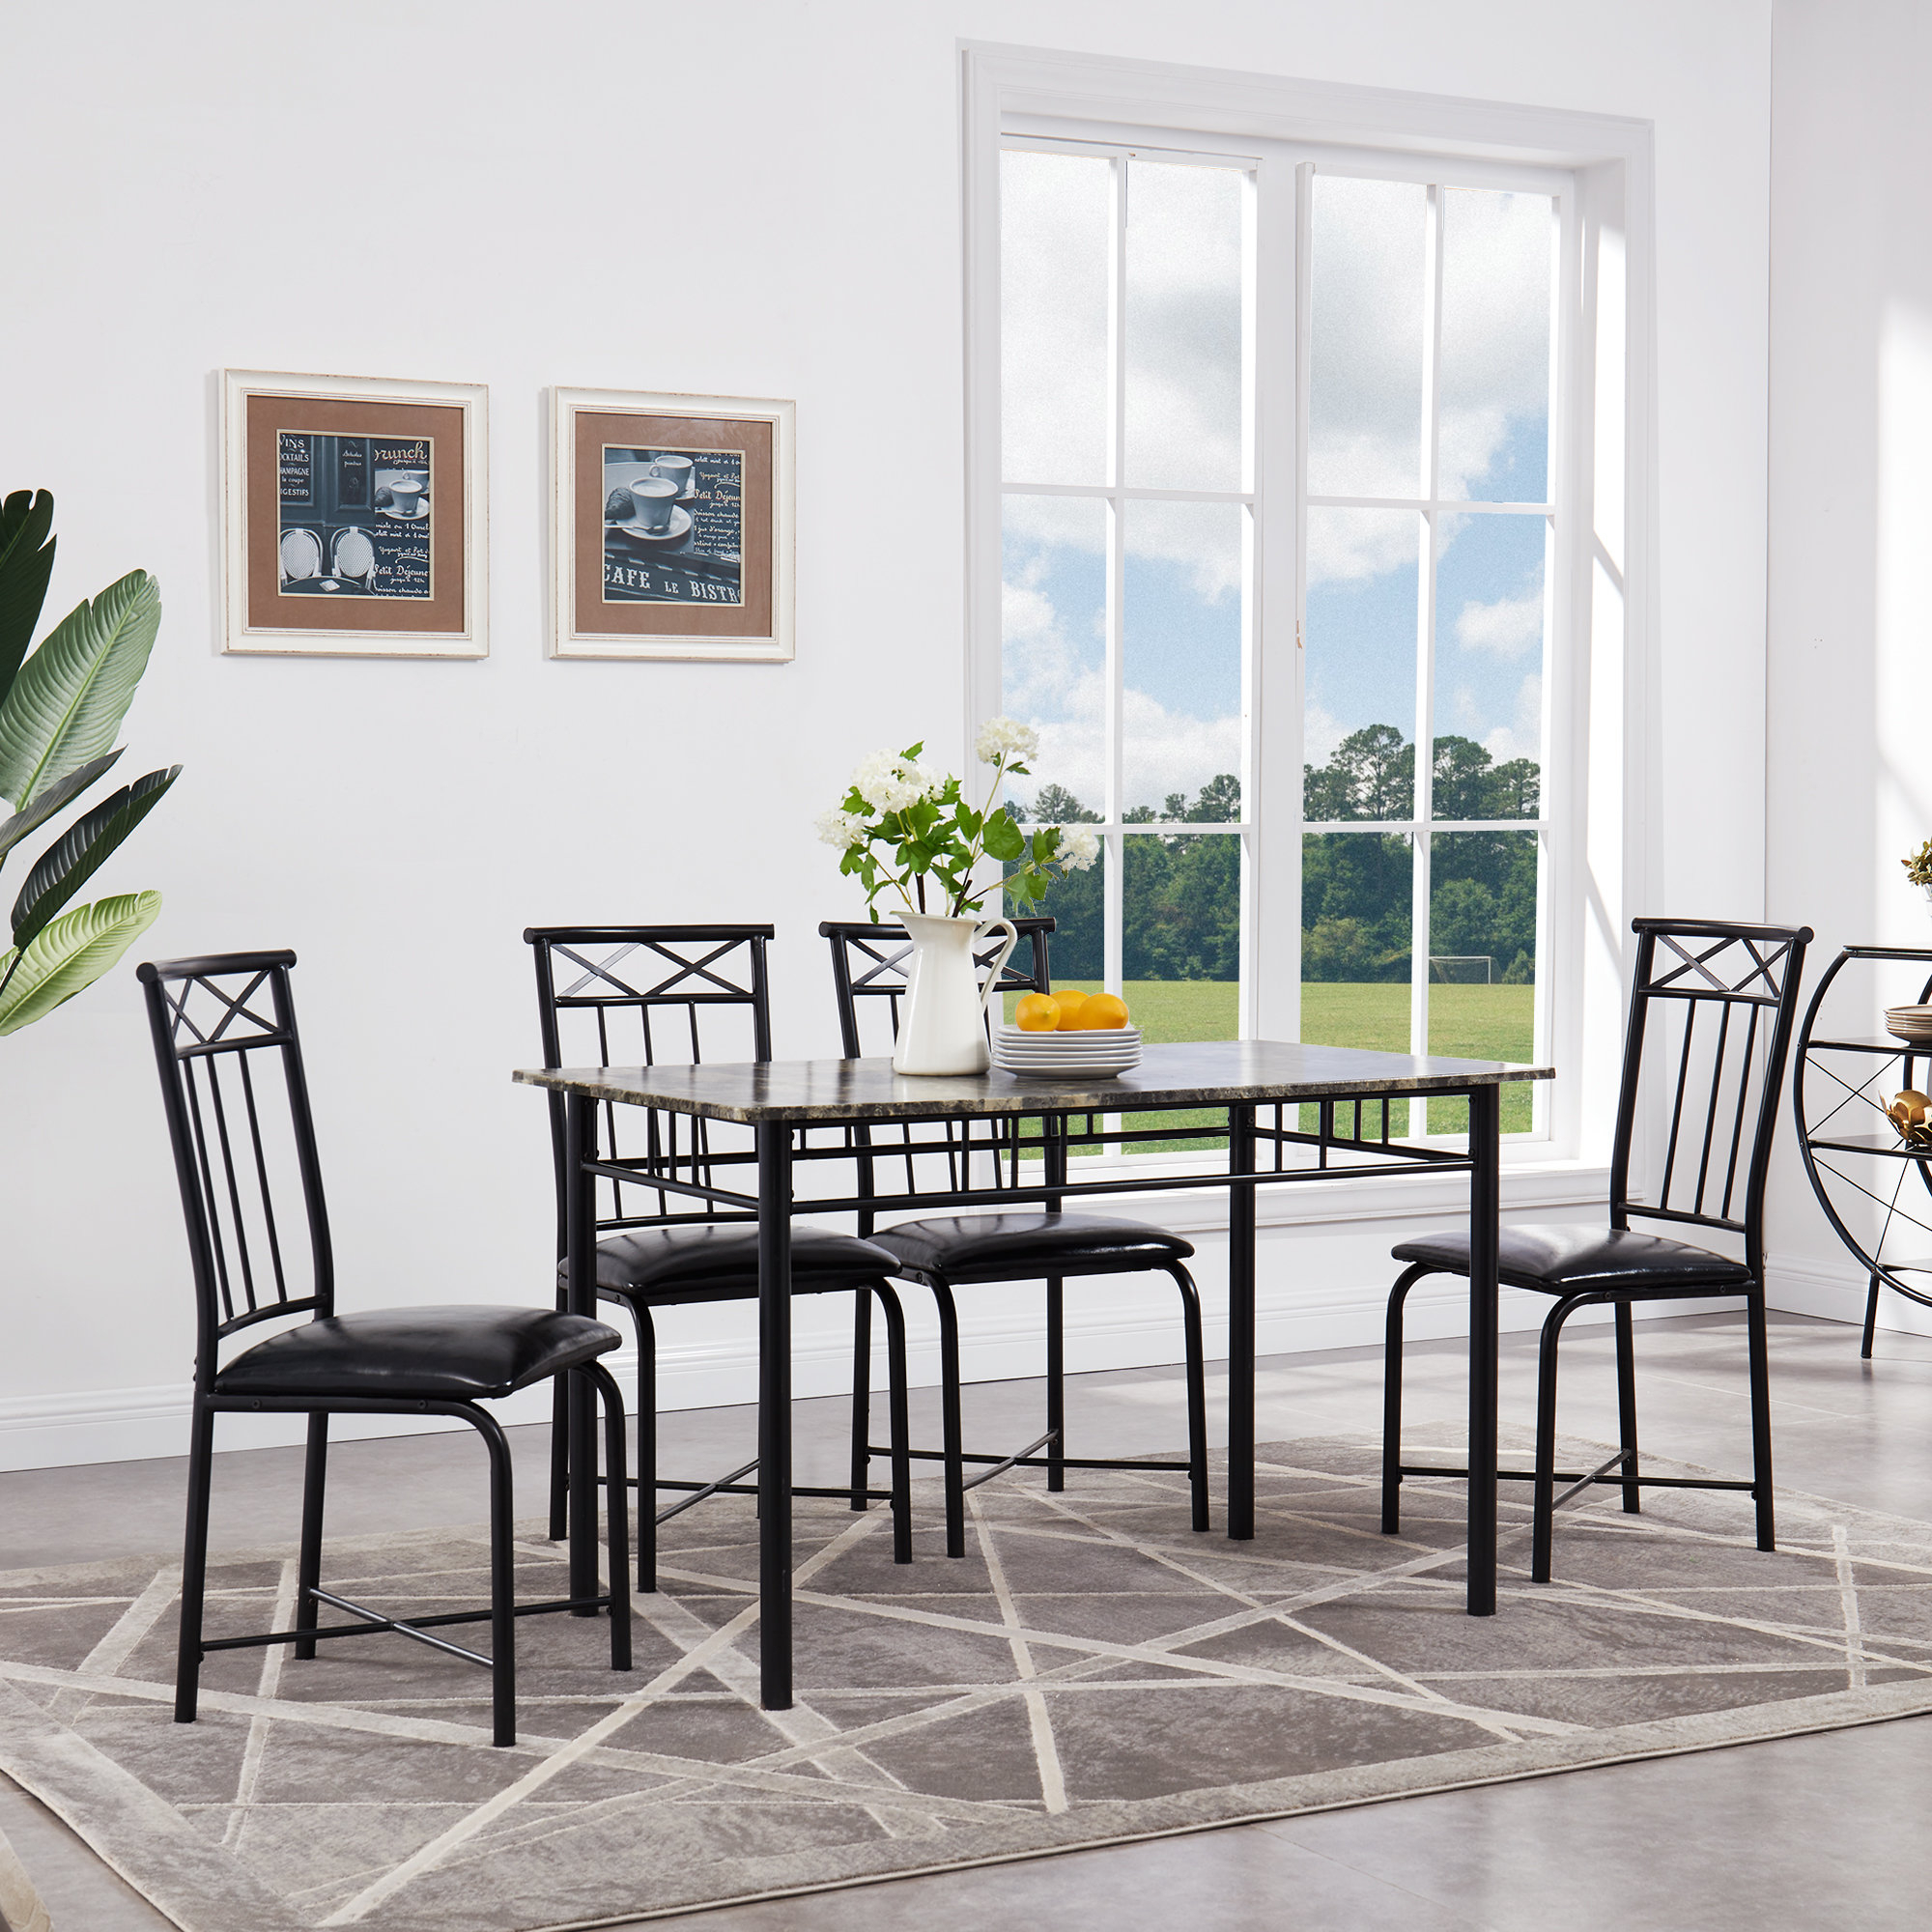 Reinert 5 Piece Dining Set Intended For Most Up To Date Jarrod 5 Piece Dining Sets (Photo 17 of 20)